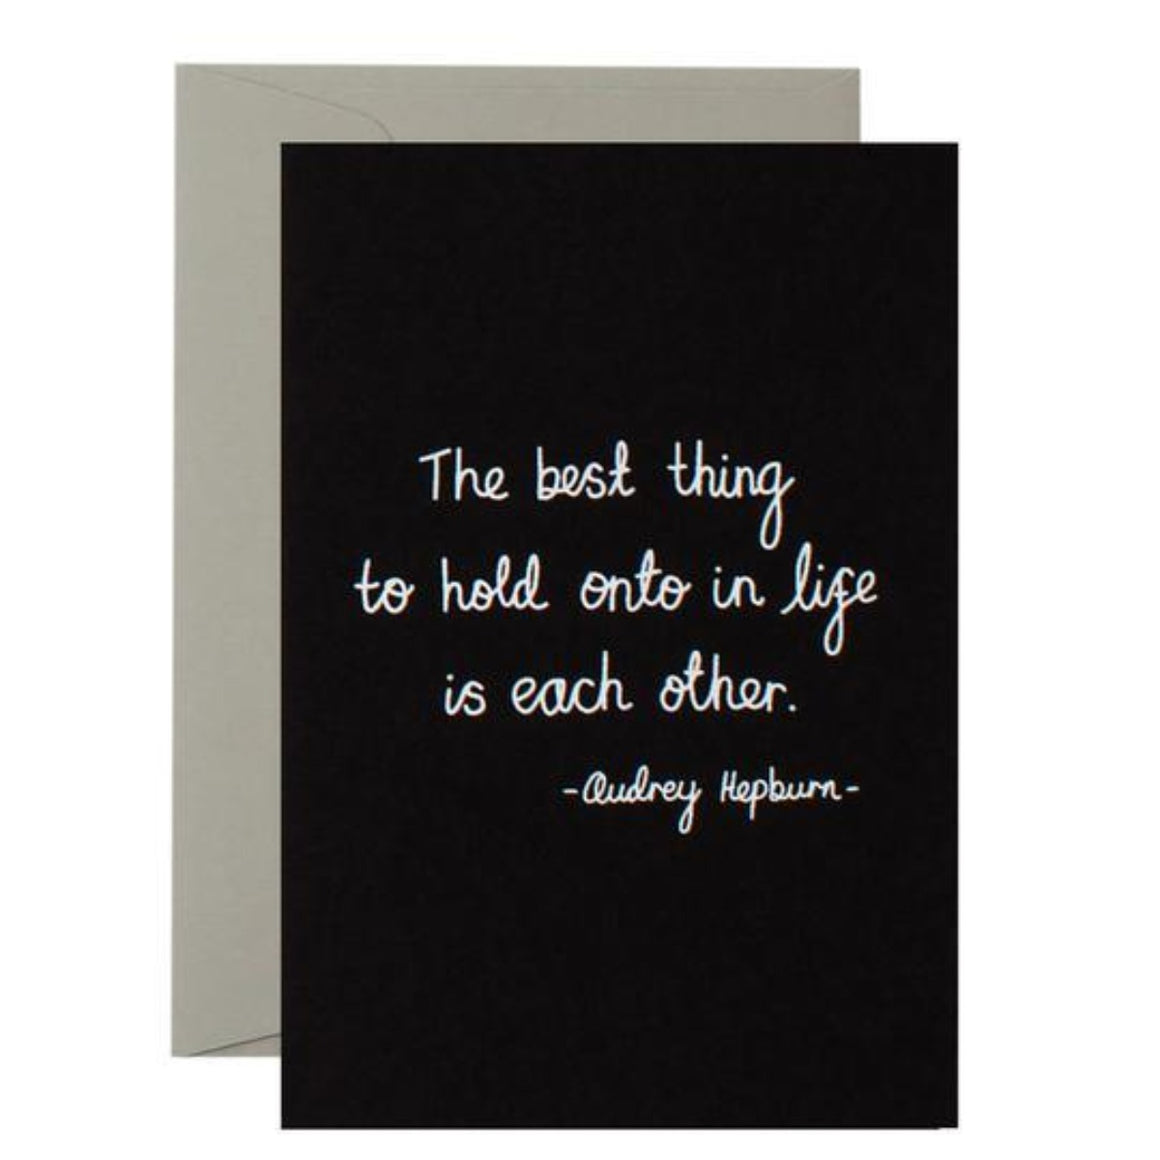 Black Greeting Card with white text saying the best thing to hold onto in life is each other. - Audrey Hepburn